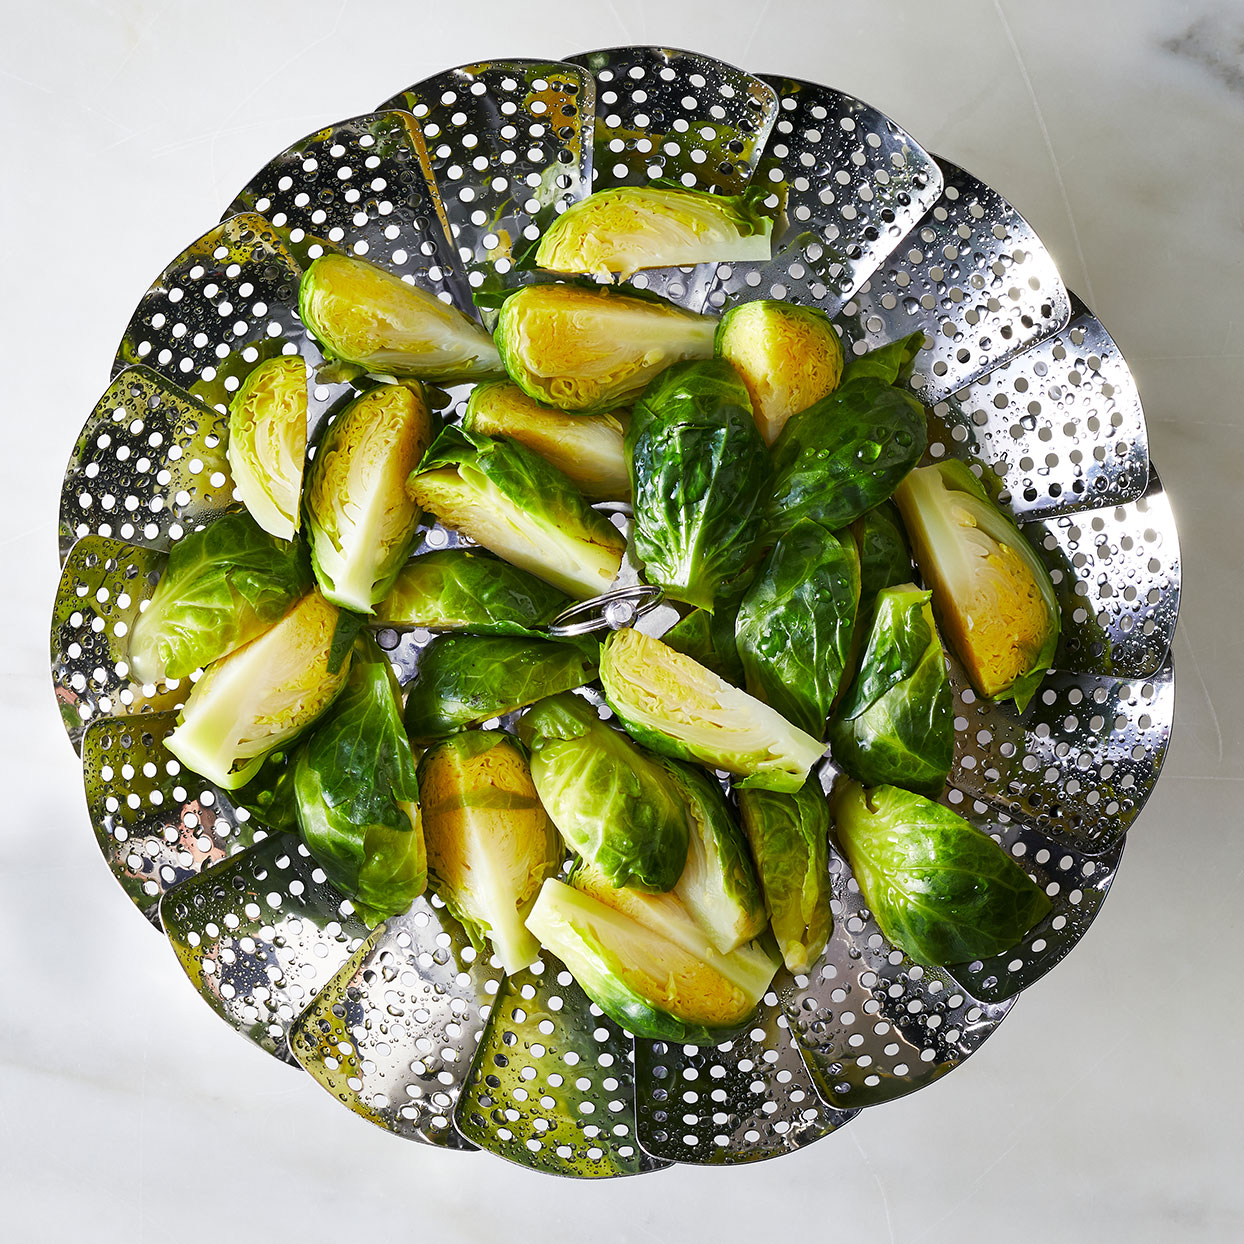 Steamed_Brussels-Sprouts-in-a-steamer-basket